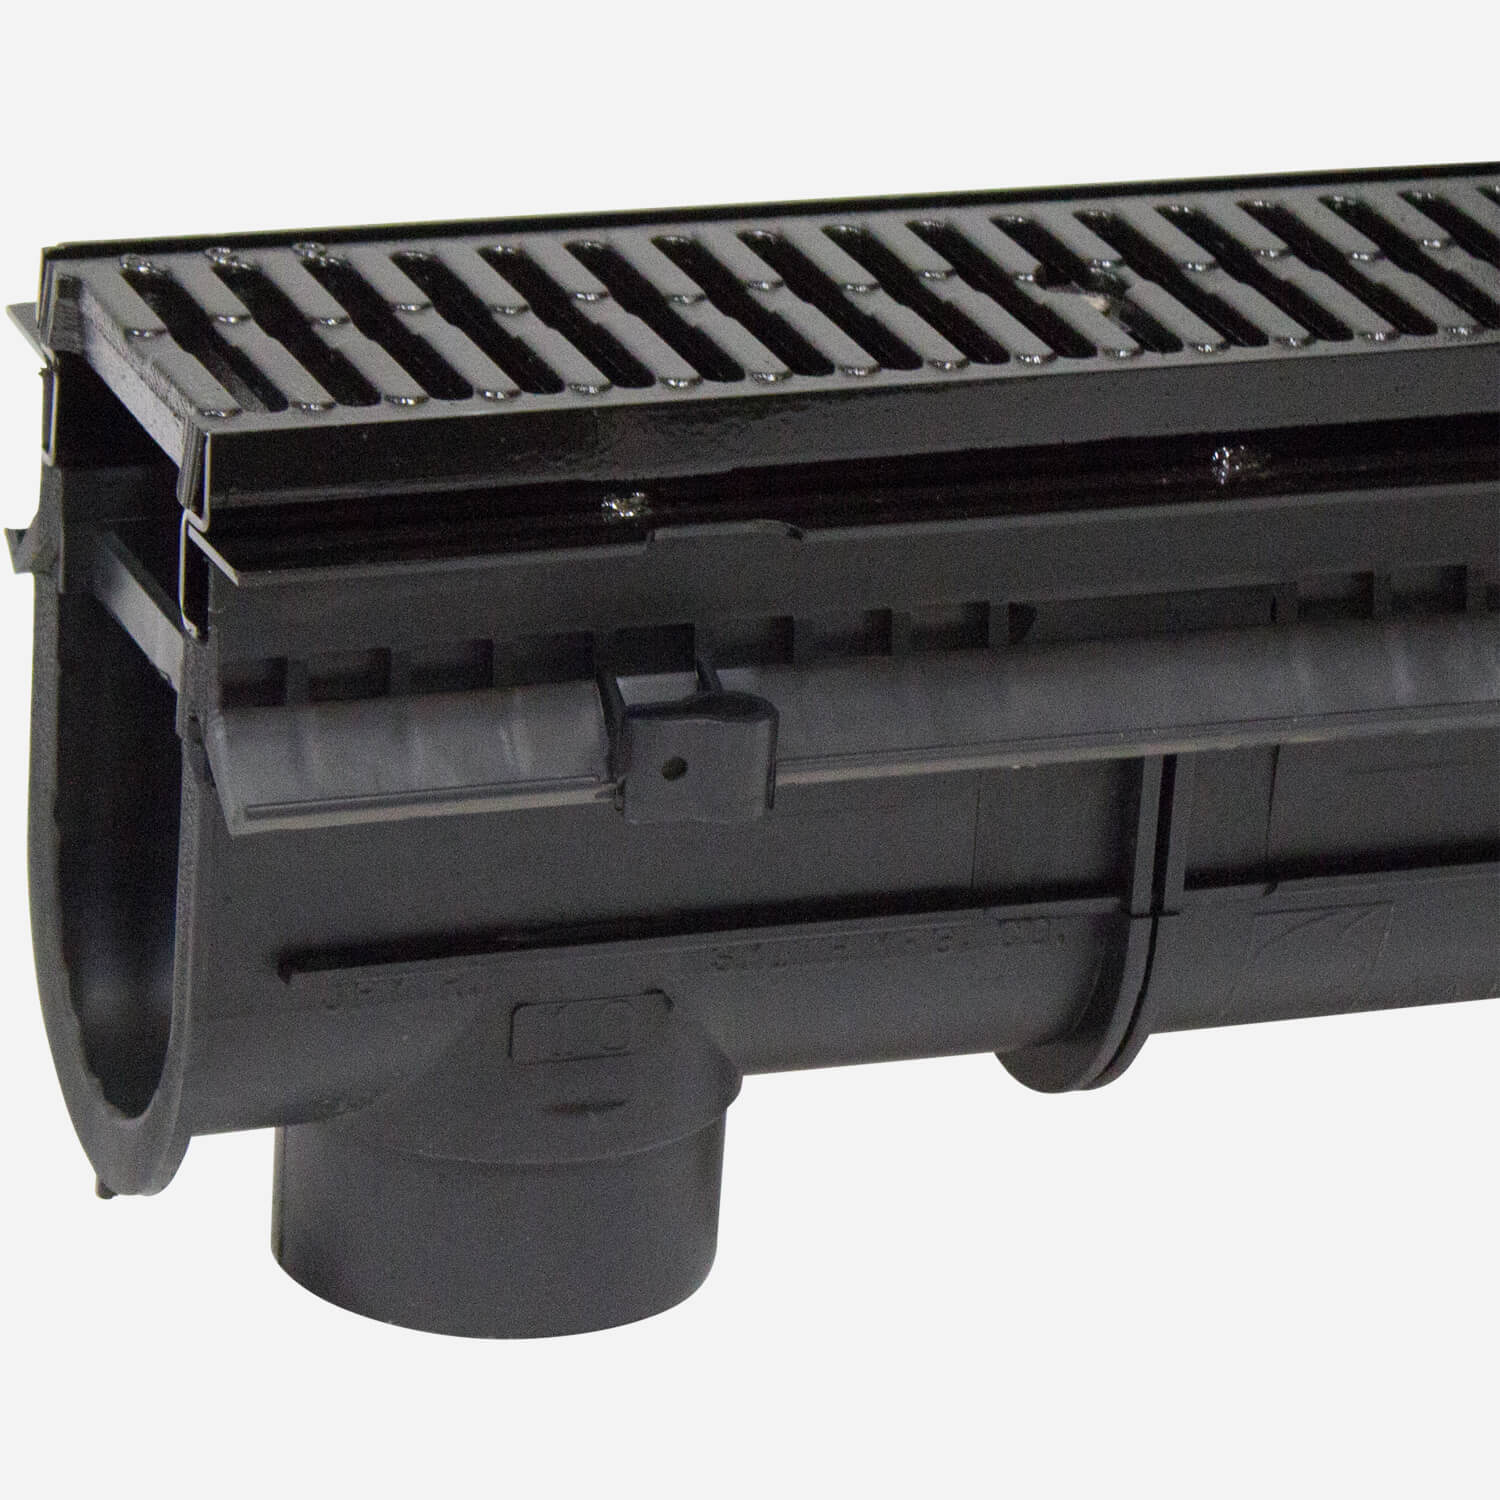 "6"" Wide Polypropylene Trench Drain System with Steel Frame System for Extra Heavy Applications -  Enviro-Flo II ®"